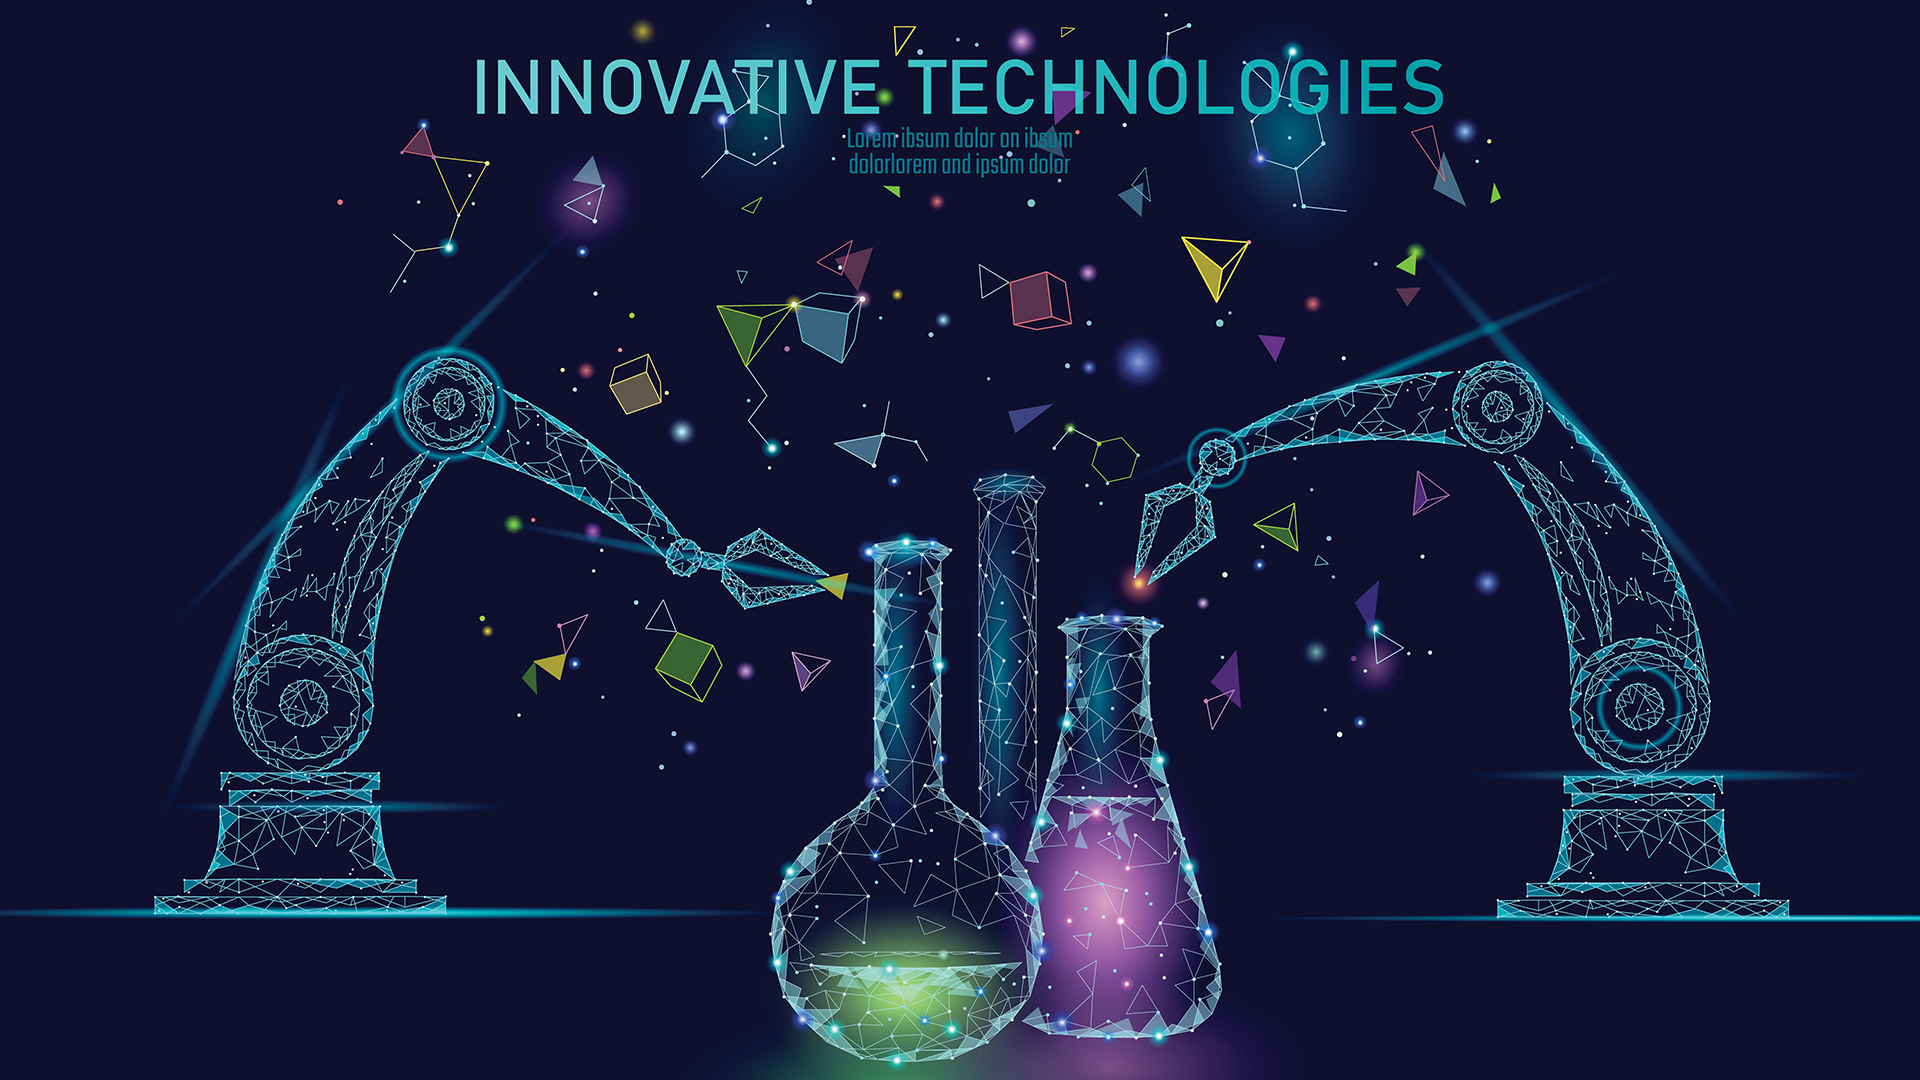 Innovative Technologies - beakers and robotic arms